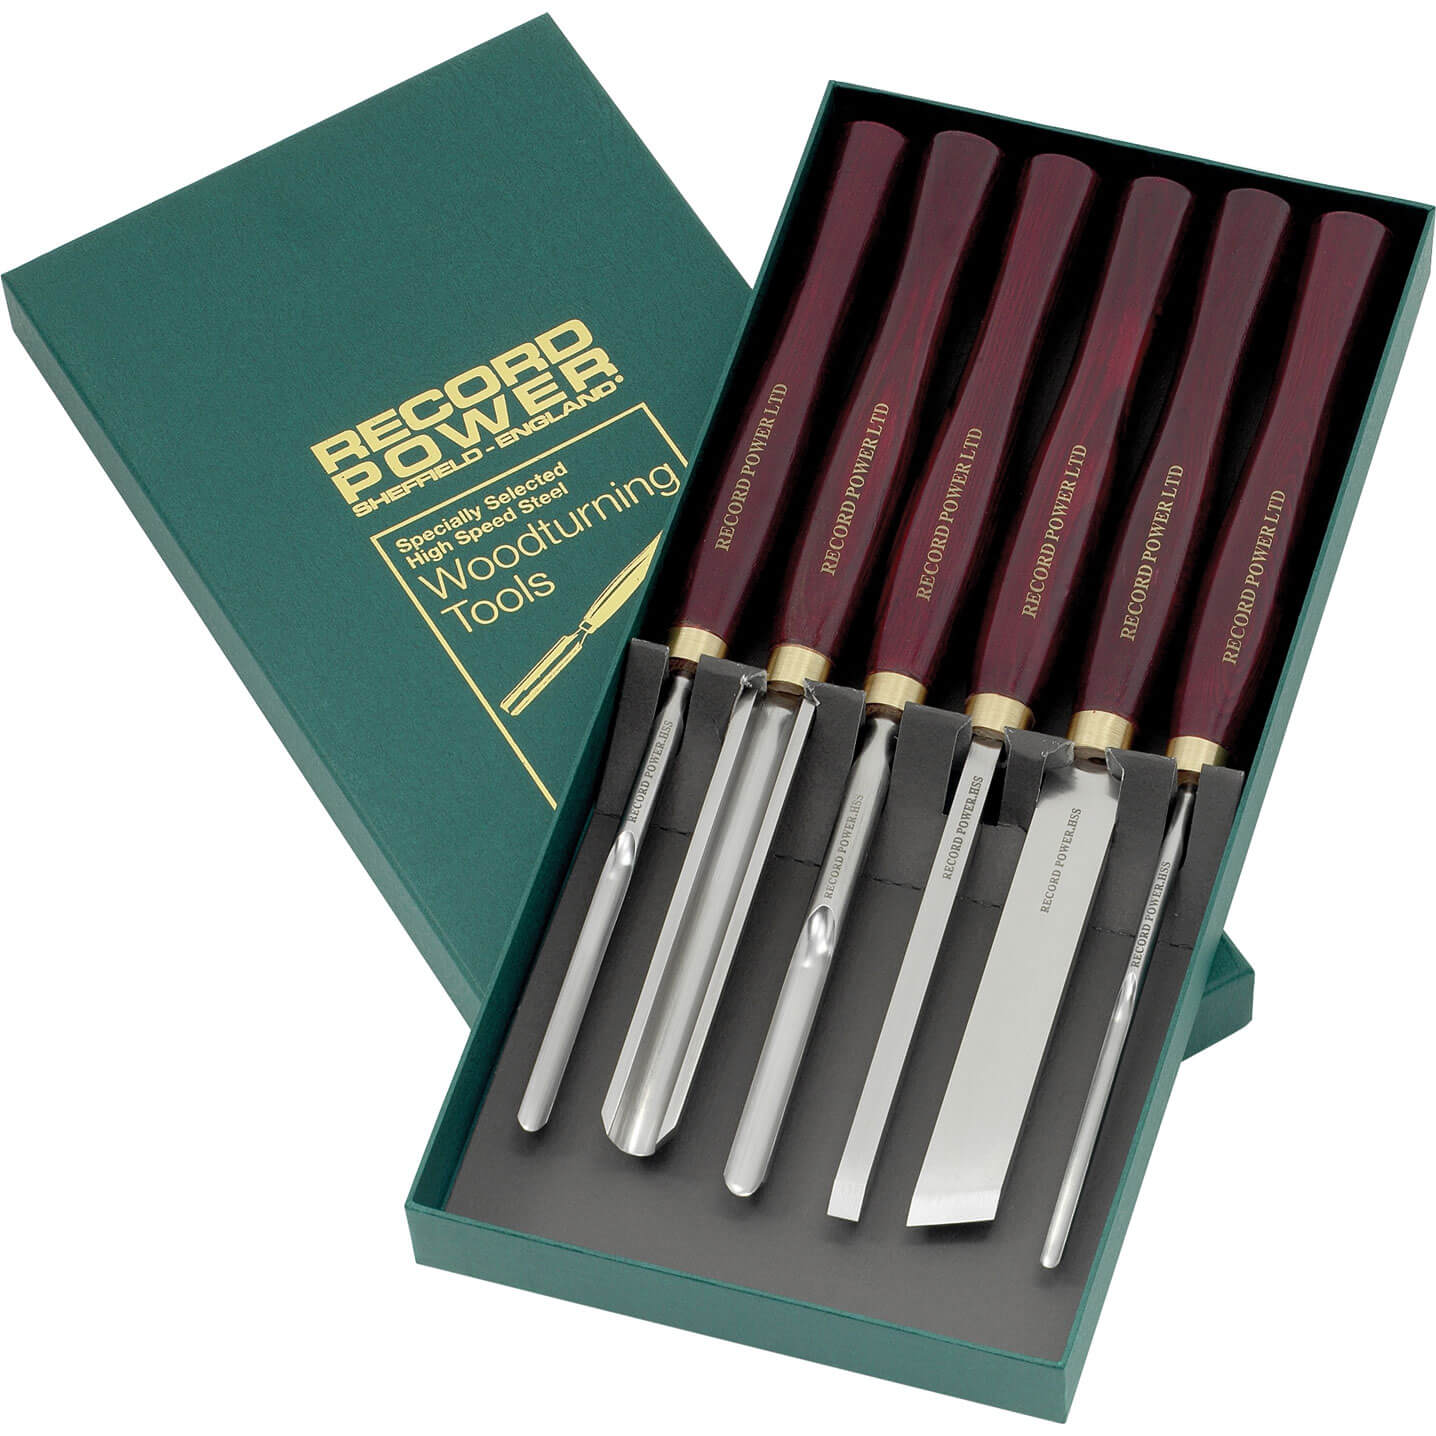 Image of Record Power 6 Piece HSS Wood Turning Tool Set